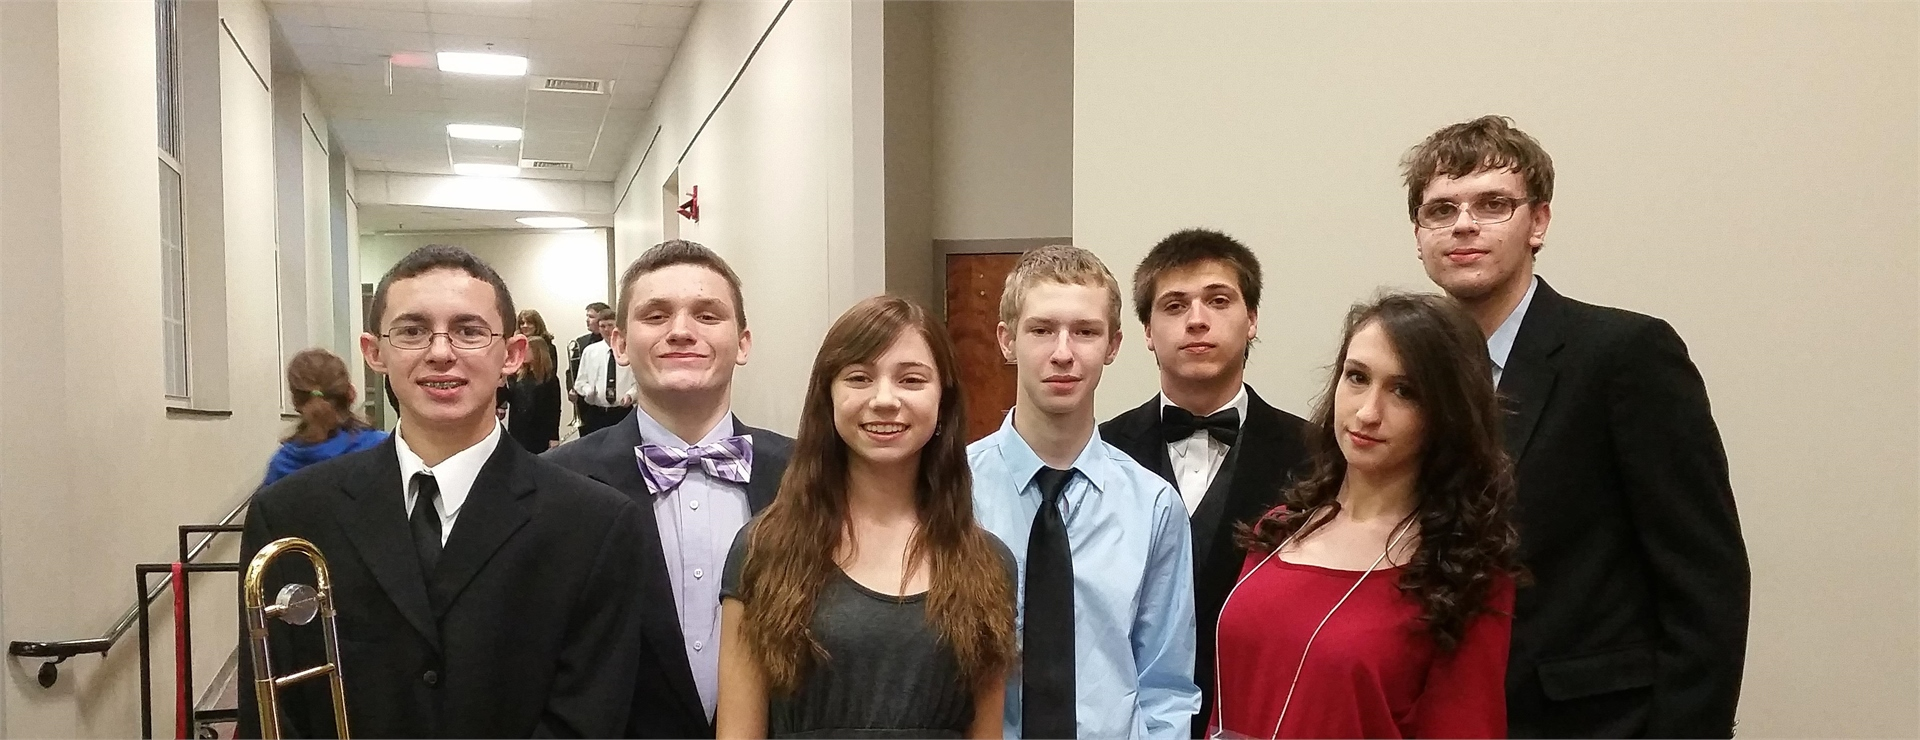 MCHS Band Attending Asbury University All-Star Band Concert